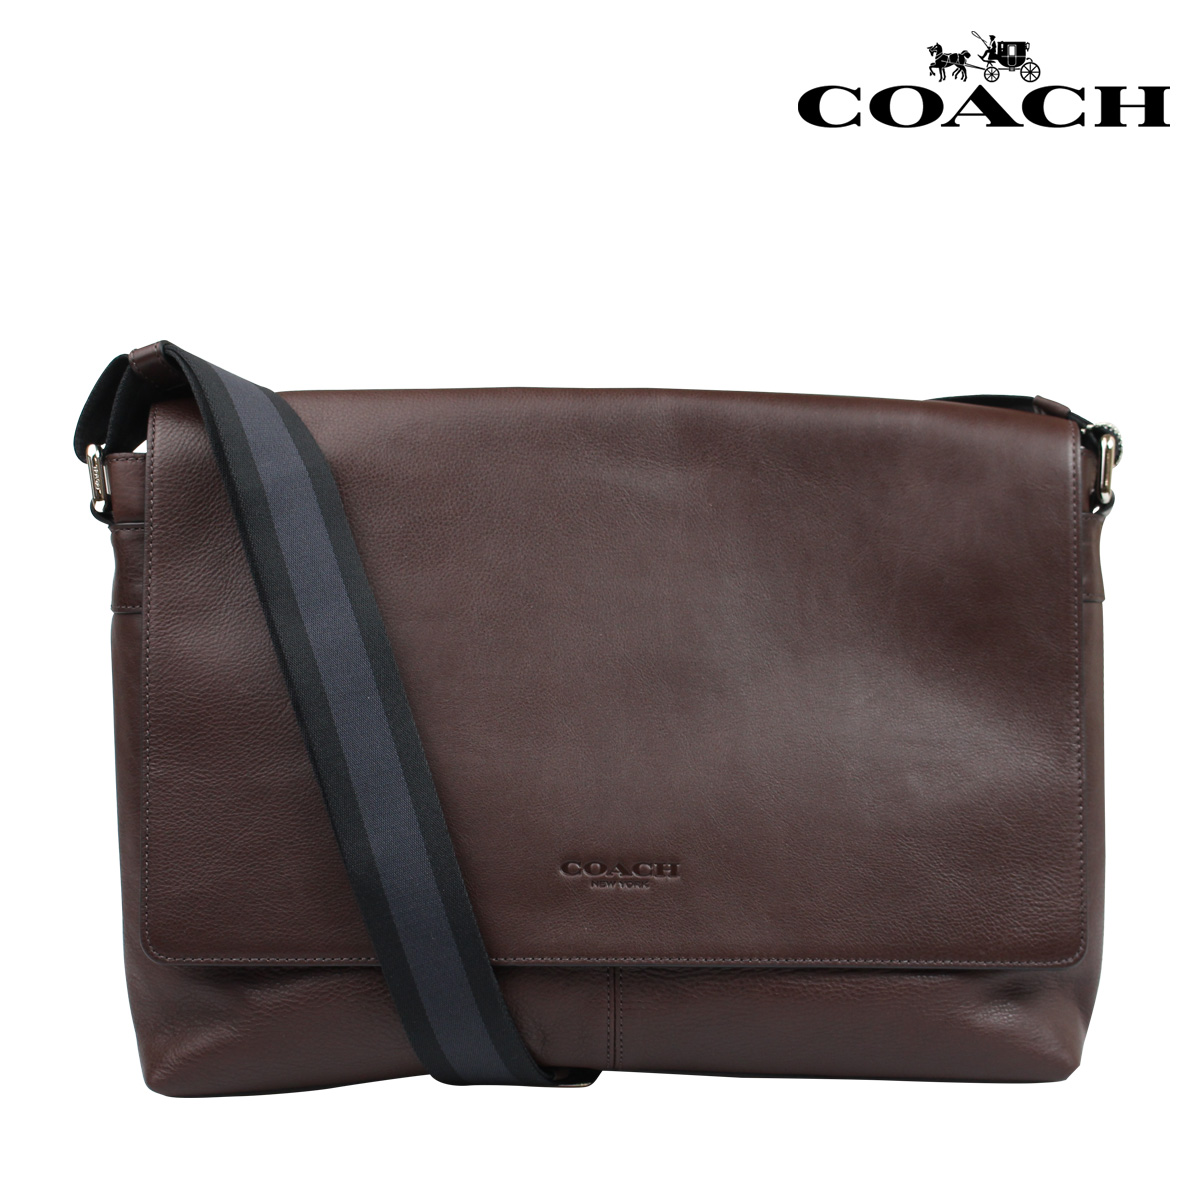 Coach Men S Messenger Bag Shoulder F71726 Mahogany Sullivan Leather 11 19 New In Stock